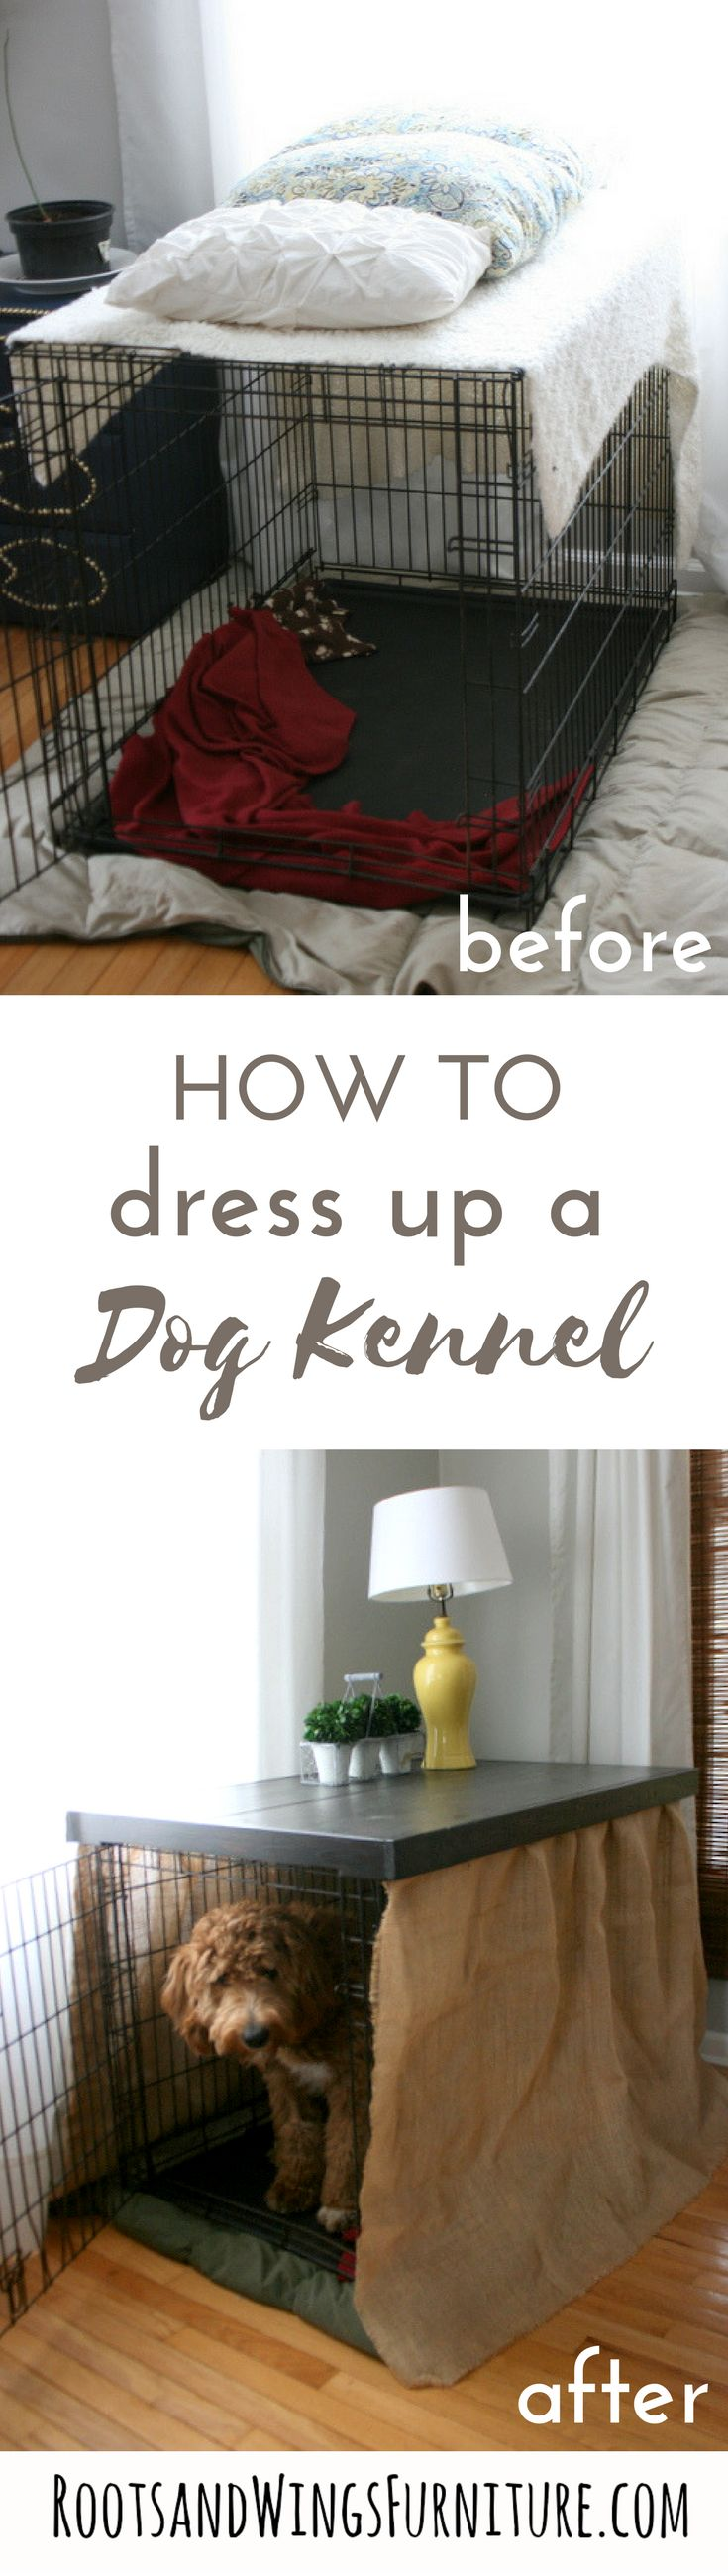 Make your dog kennel go with your home's style and decor a little more!  Build a table to hide the kennel!  DIY by Jenni of Roots and Wings Furniture.